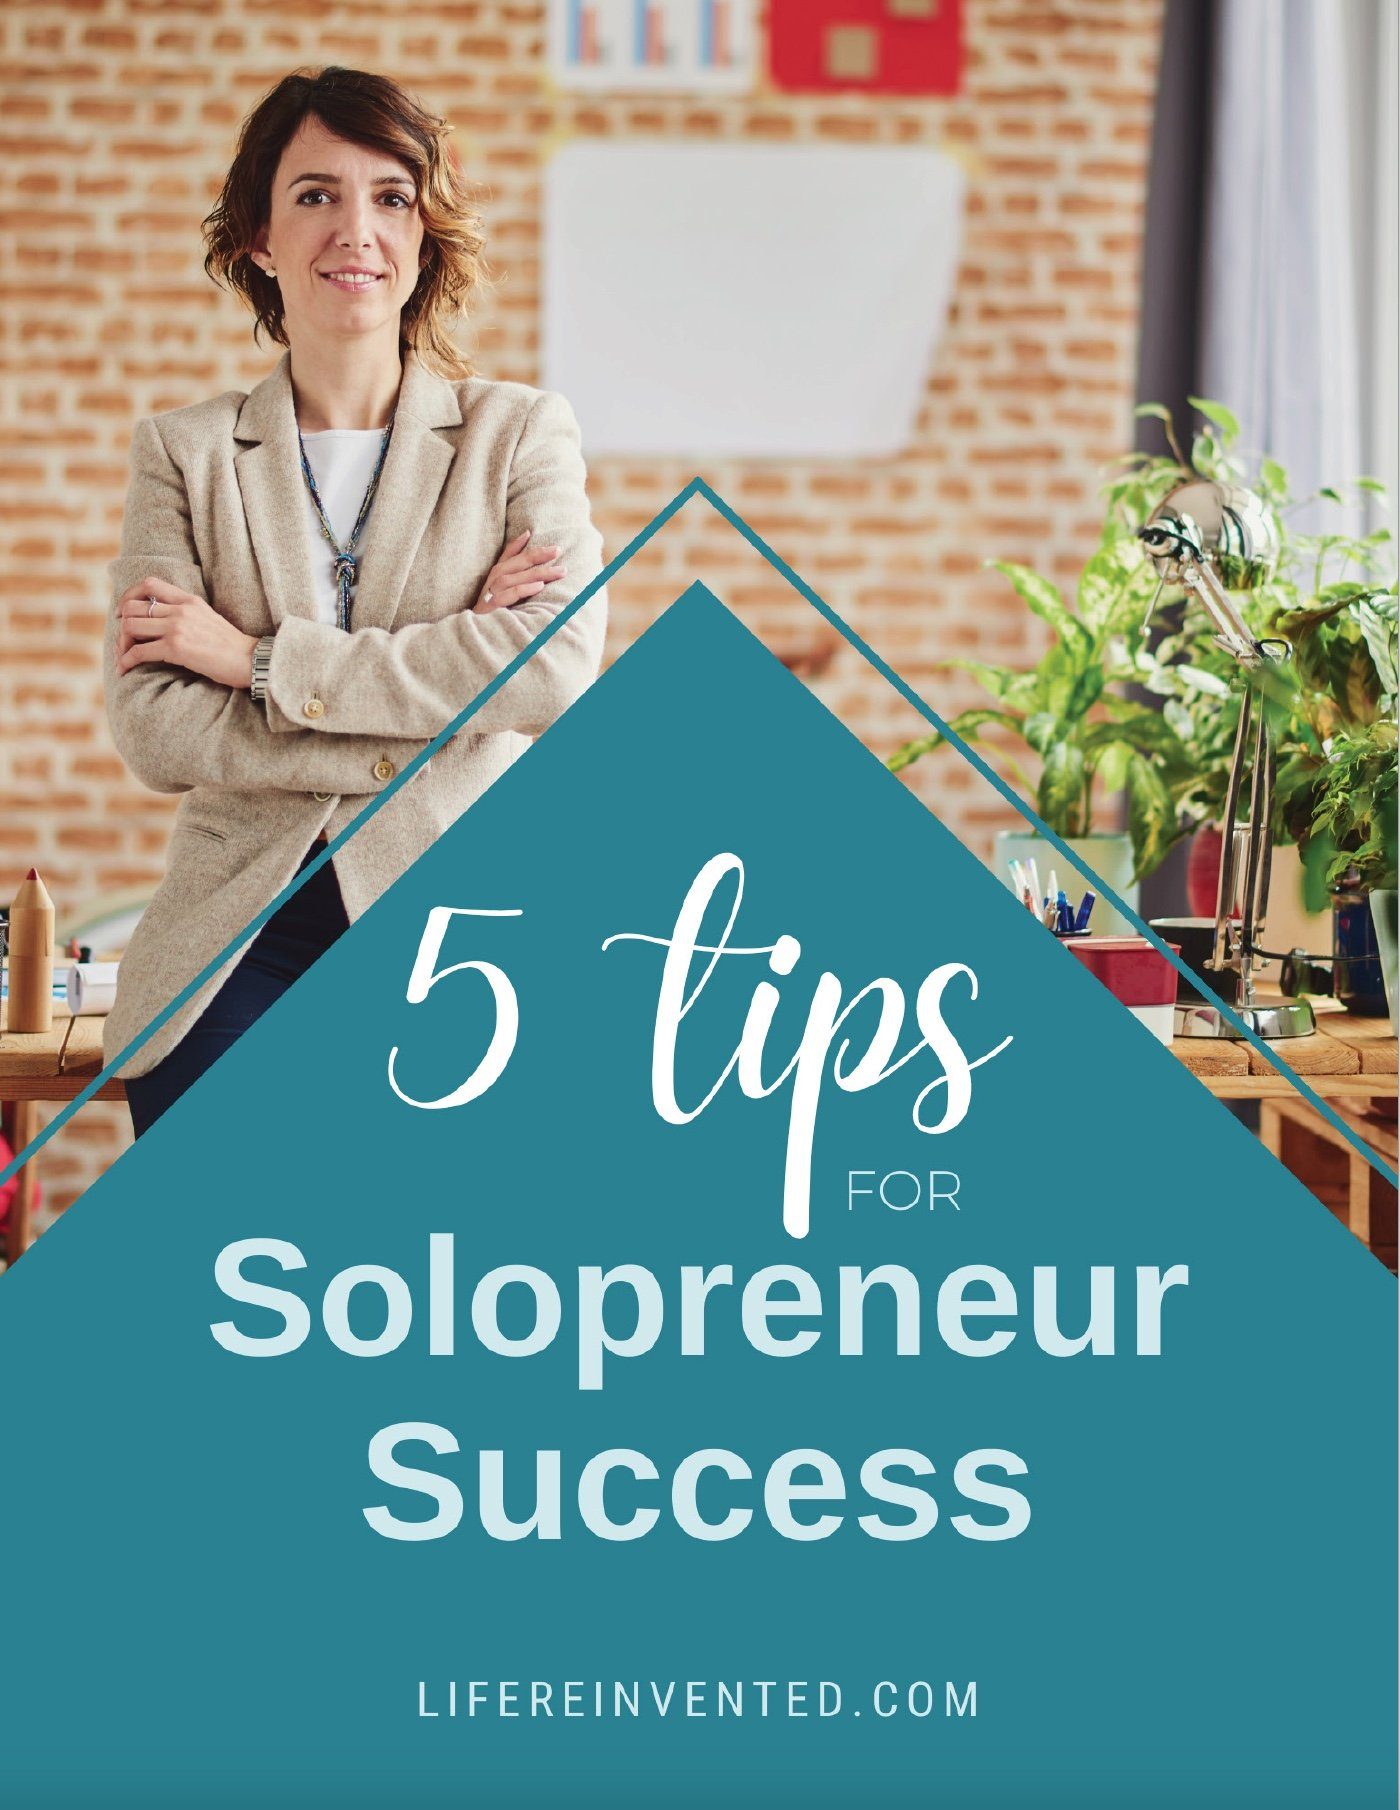 5 tips for solopreneur success